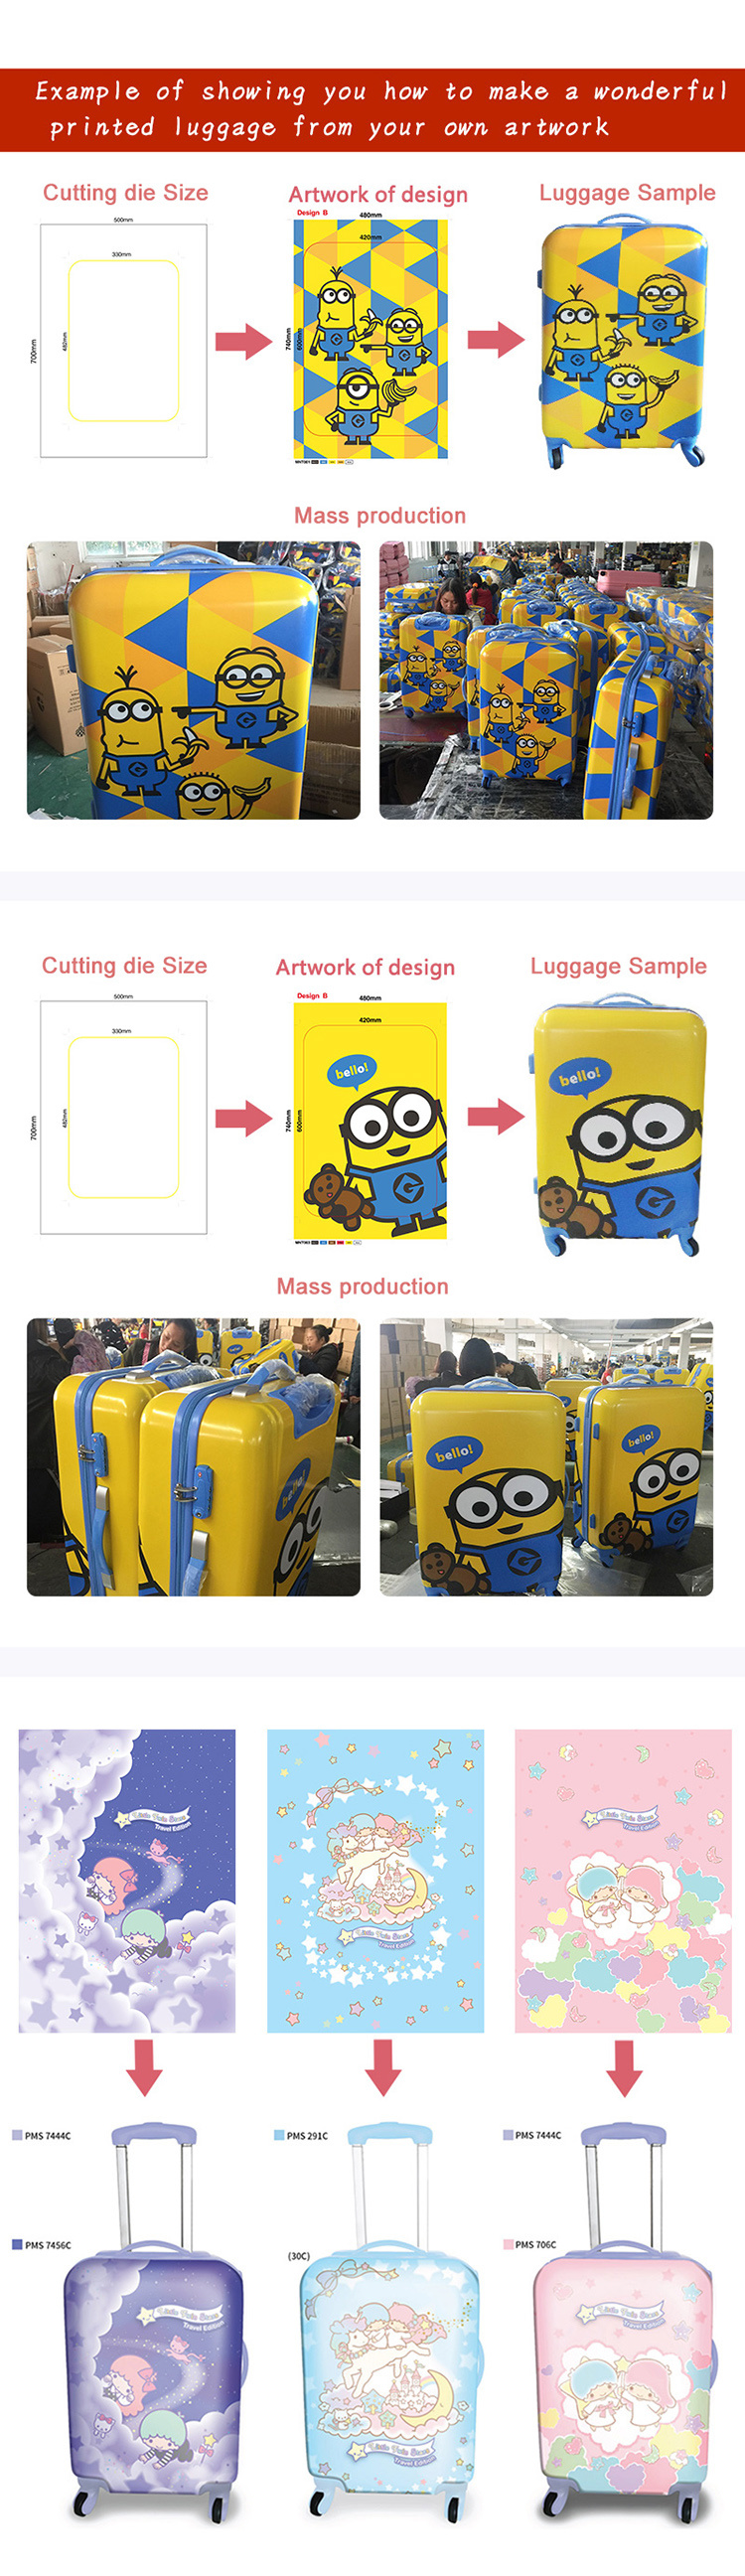 88690aa09 **OEM/ODM YOUR OWN PRINTING DESIGN** SEND US ARTWORK OF YOUR DESIGN AND WE  PRINT ON THE LUGGAGE